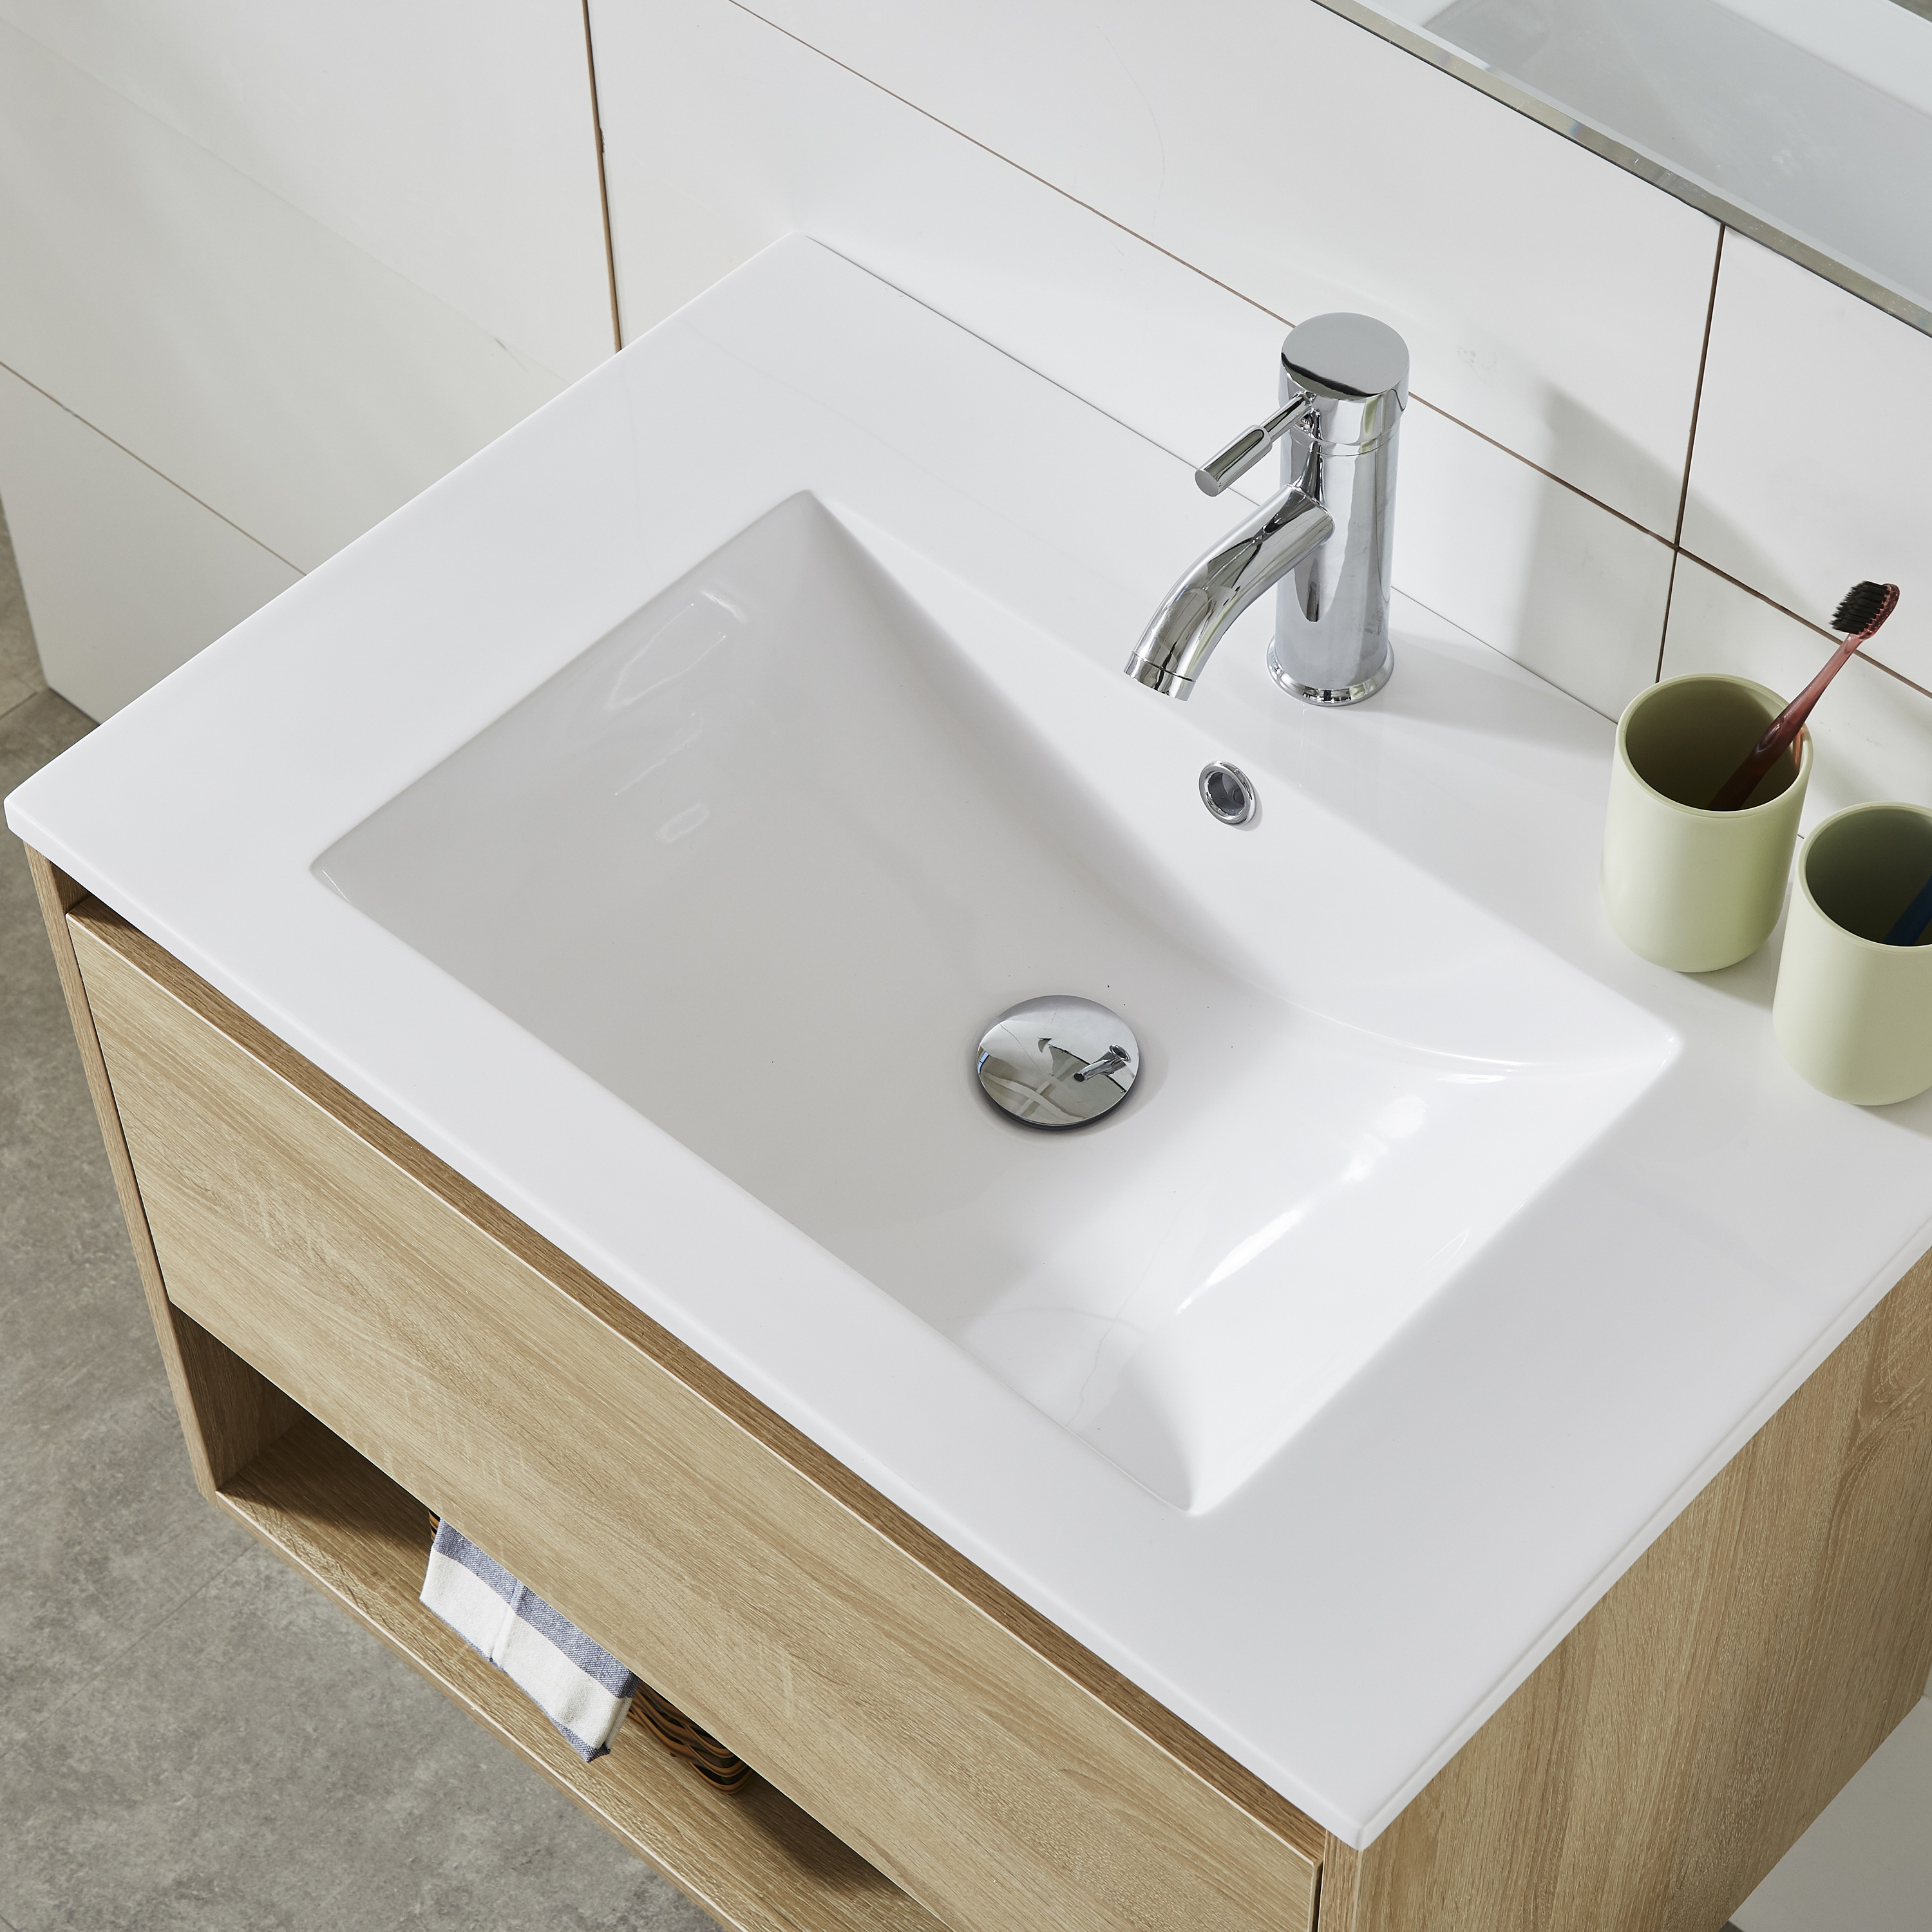 Simple Fasion MDF Melamine Modern Bathroom Basin Furniture Wall Cabinets with Mirror